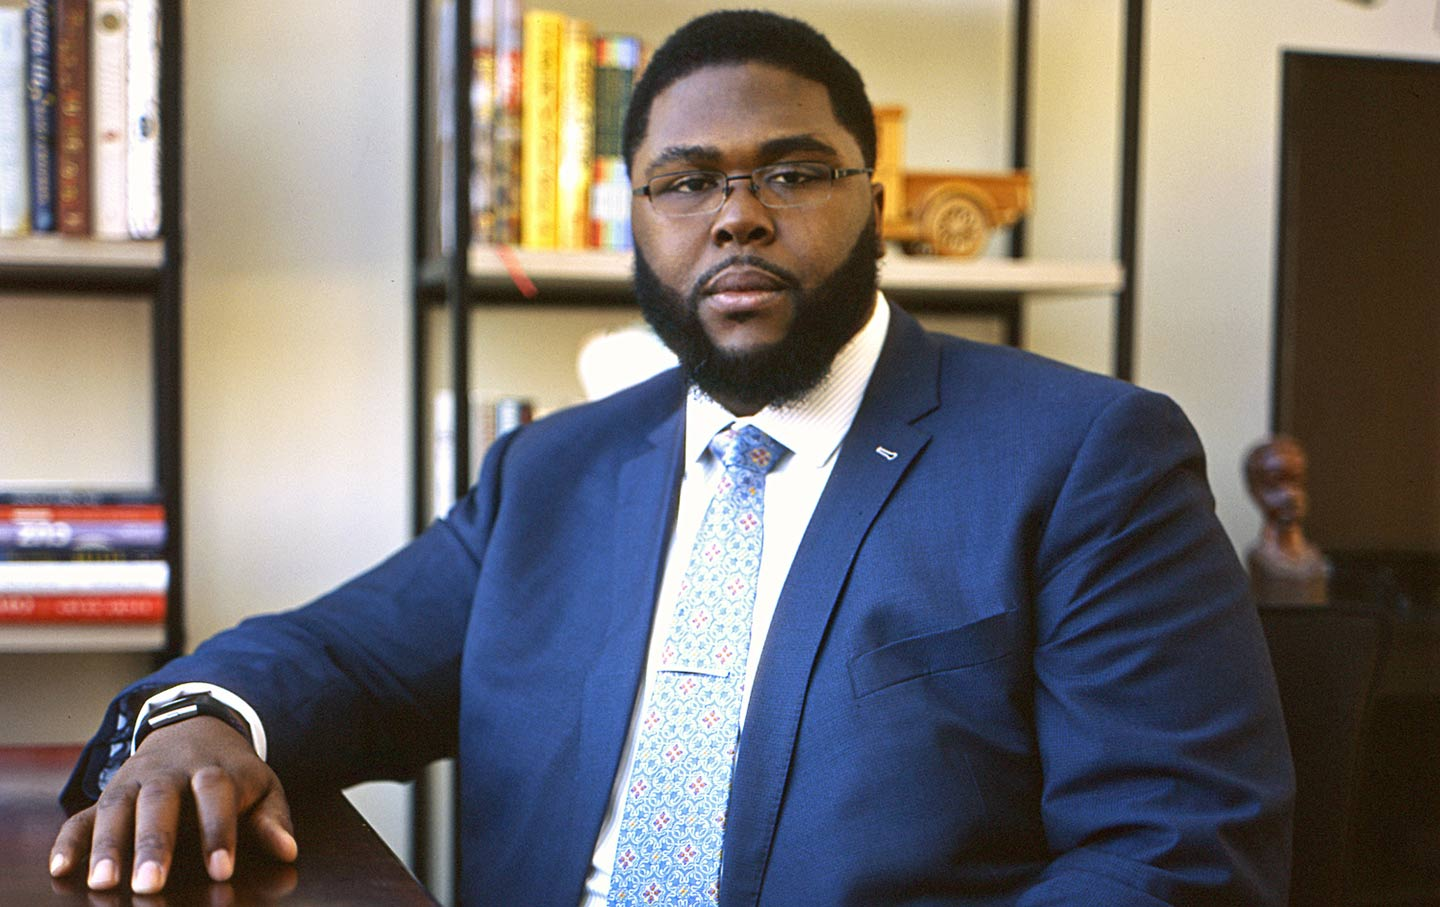 Anthony Abraham Jacks Wants to Redefine How We Think About College Campus Inequality